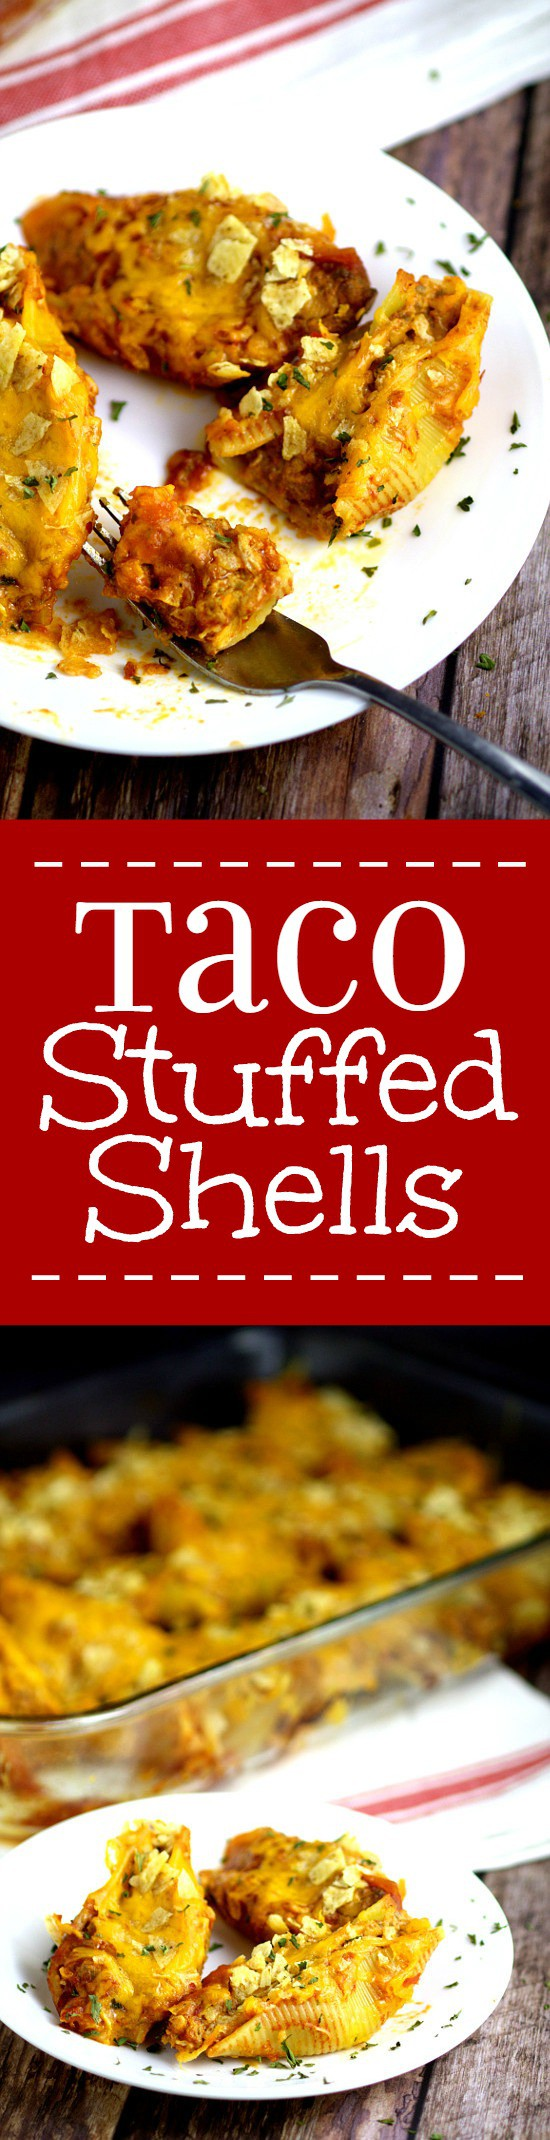 Taco Stuffed Shells | The Gracious Wife